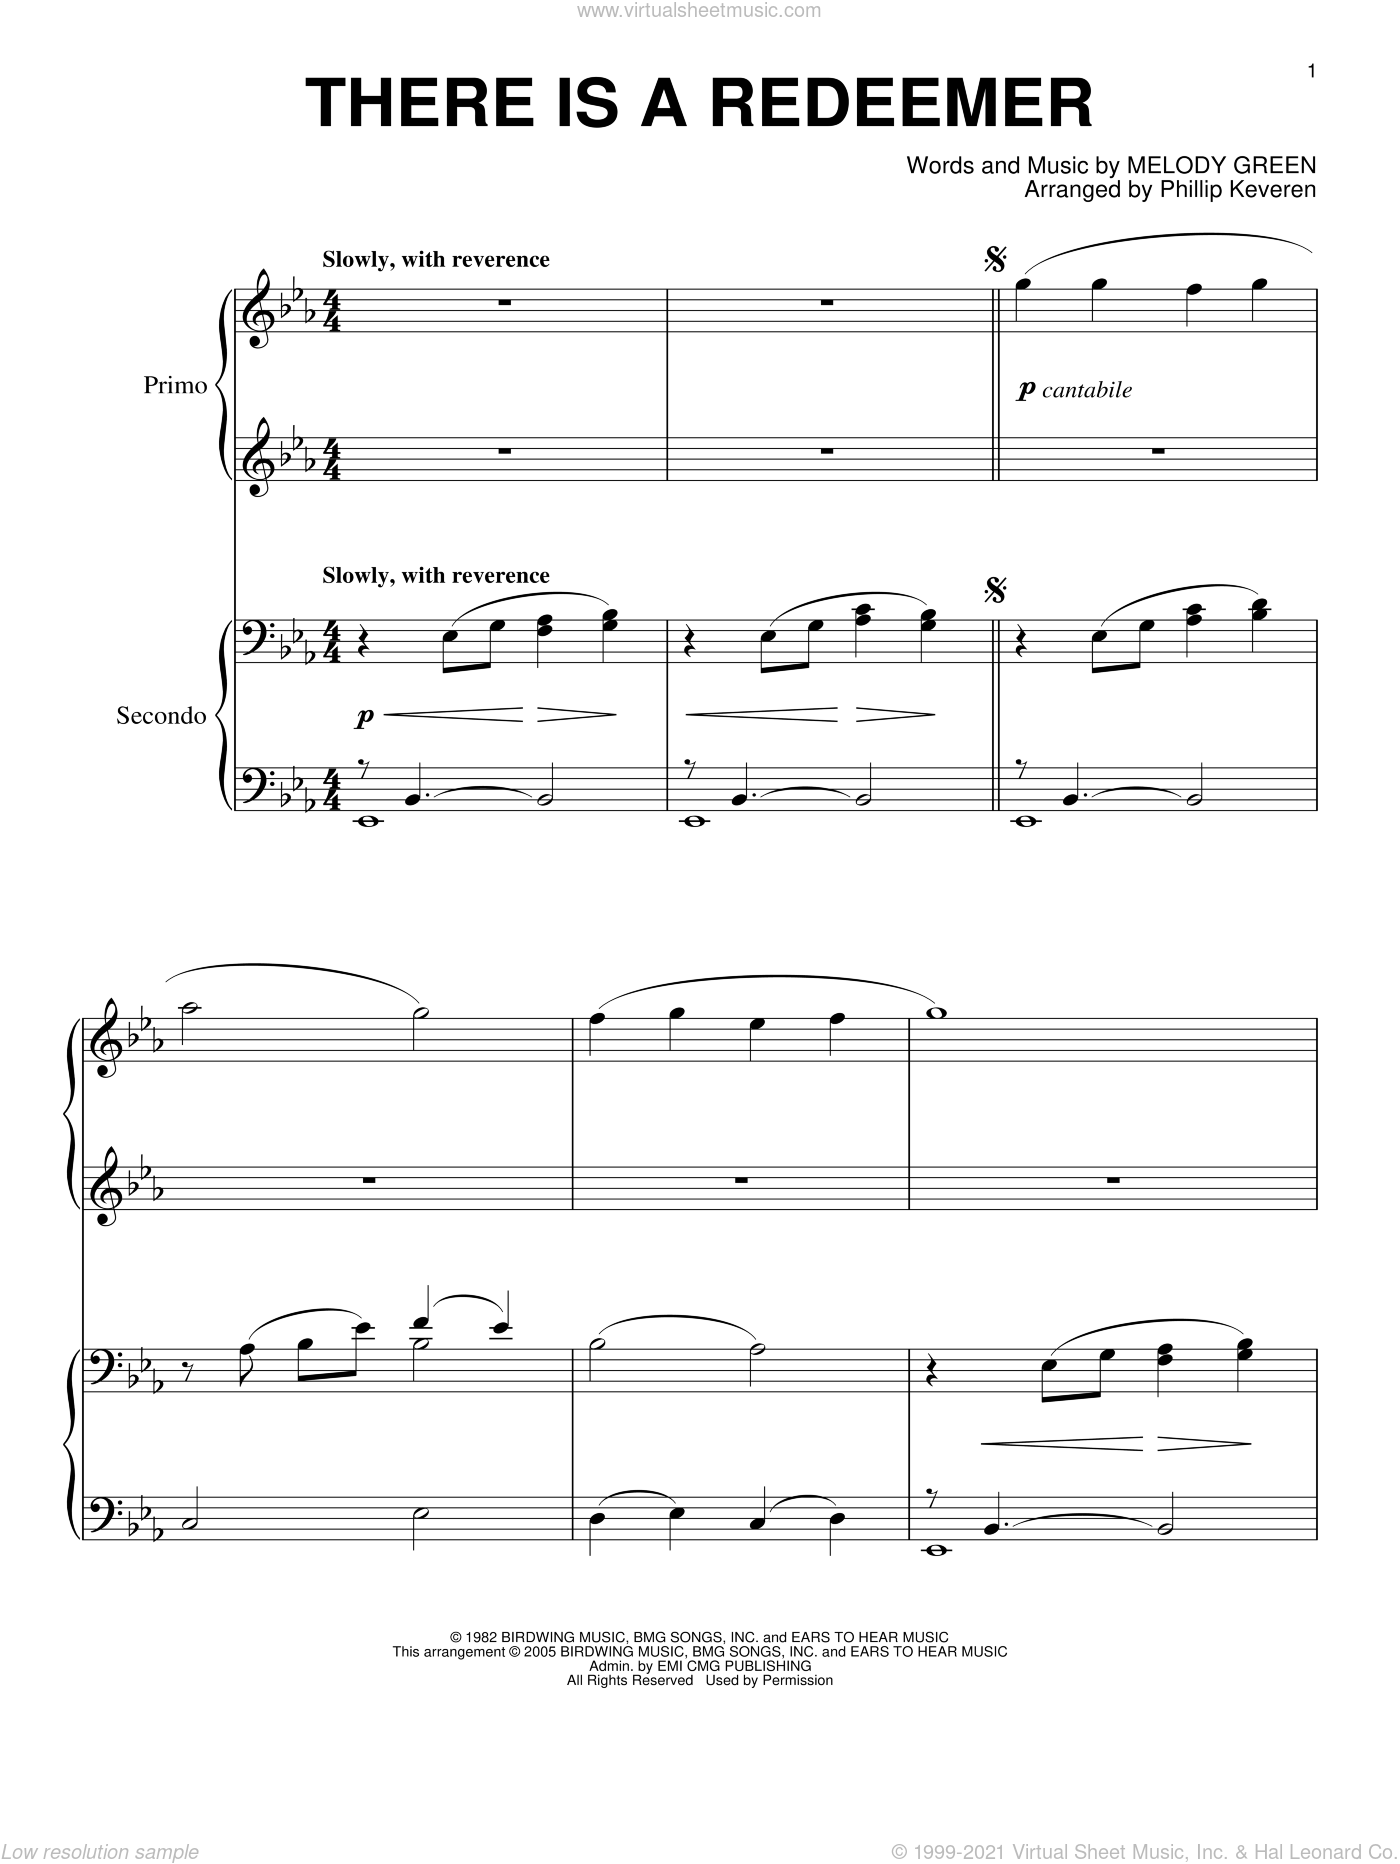 There Is A Redeemer sheet music for piano four hands by Keith Green, Phillip Keveren and Melody Green, intermediate skill level